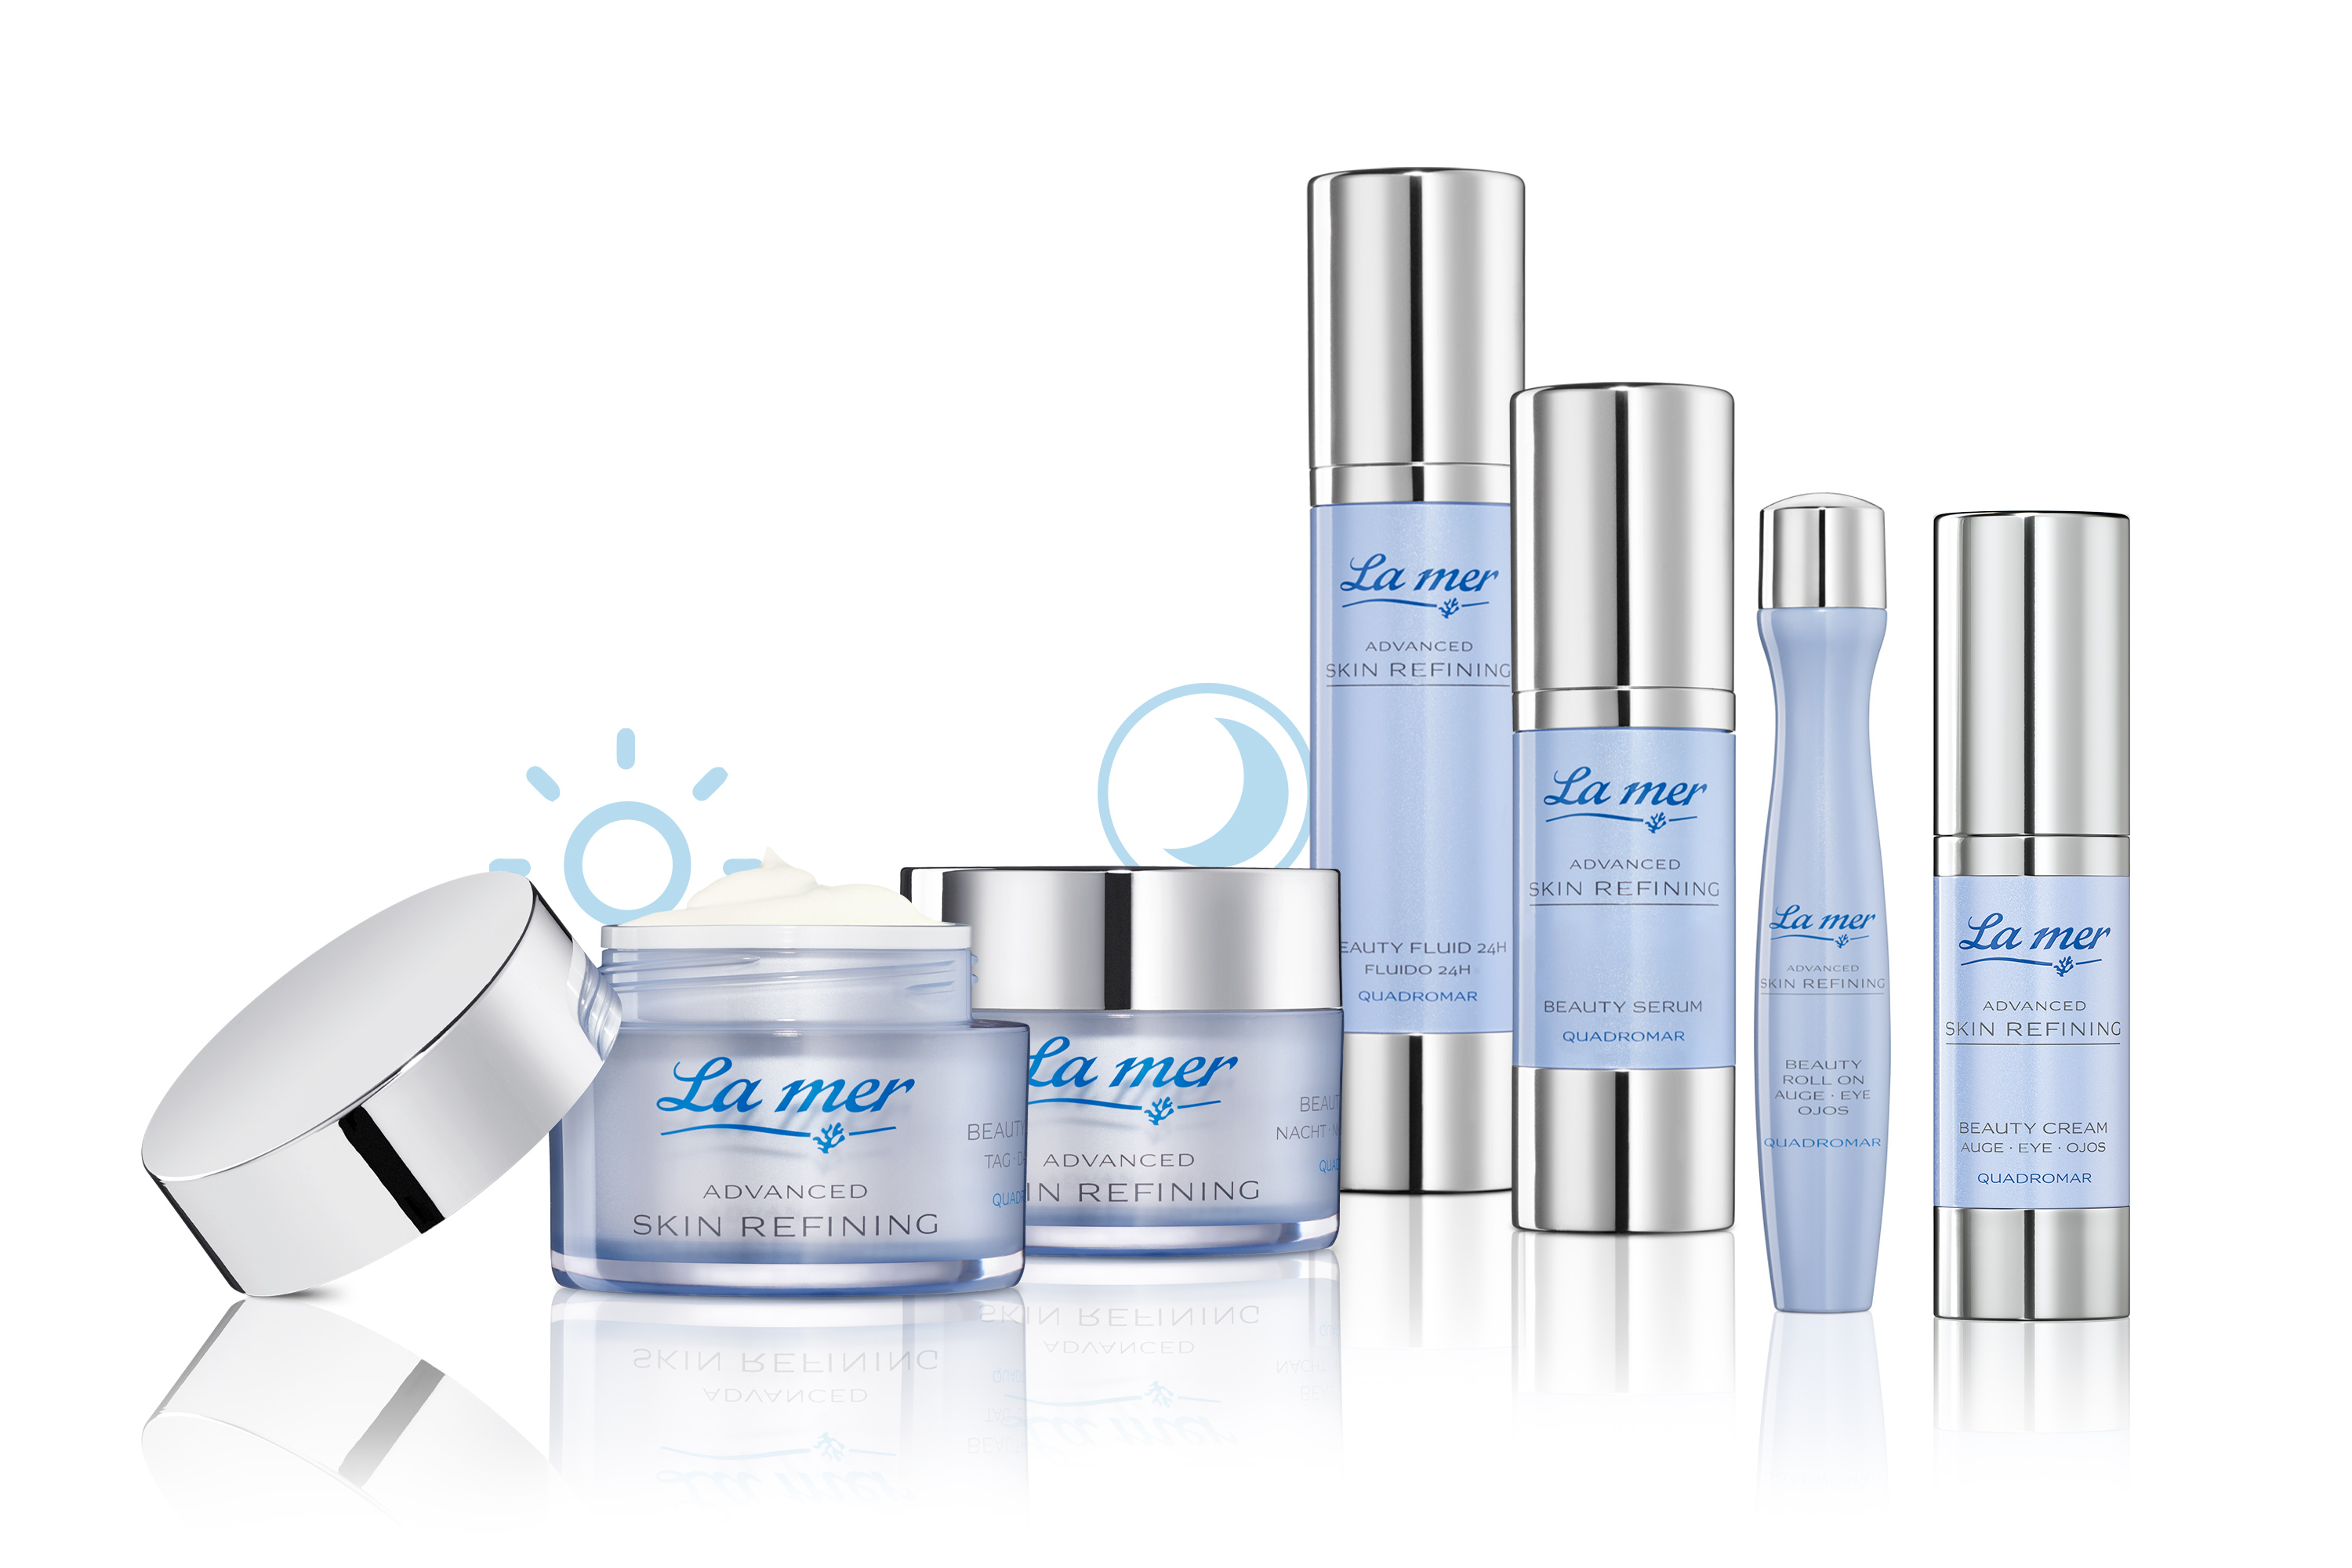 Advanced Skin Refining